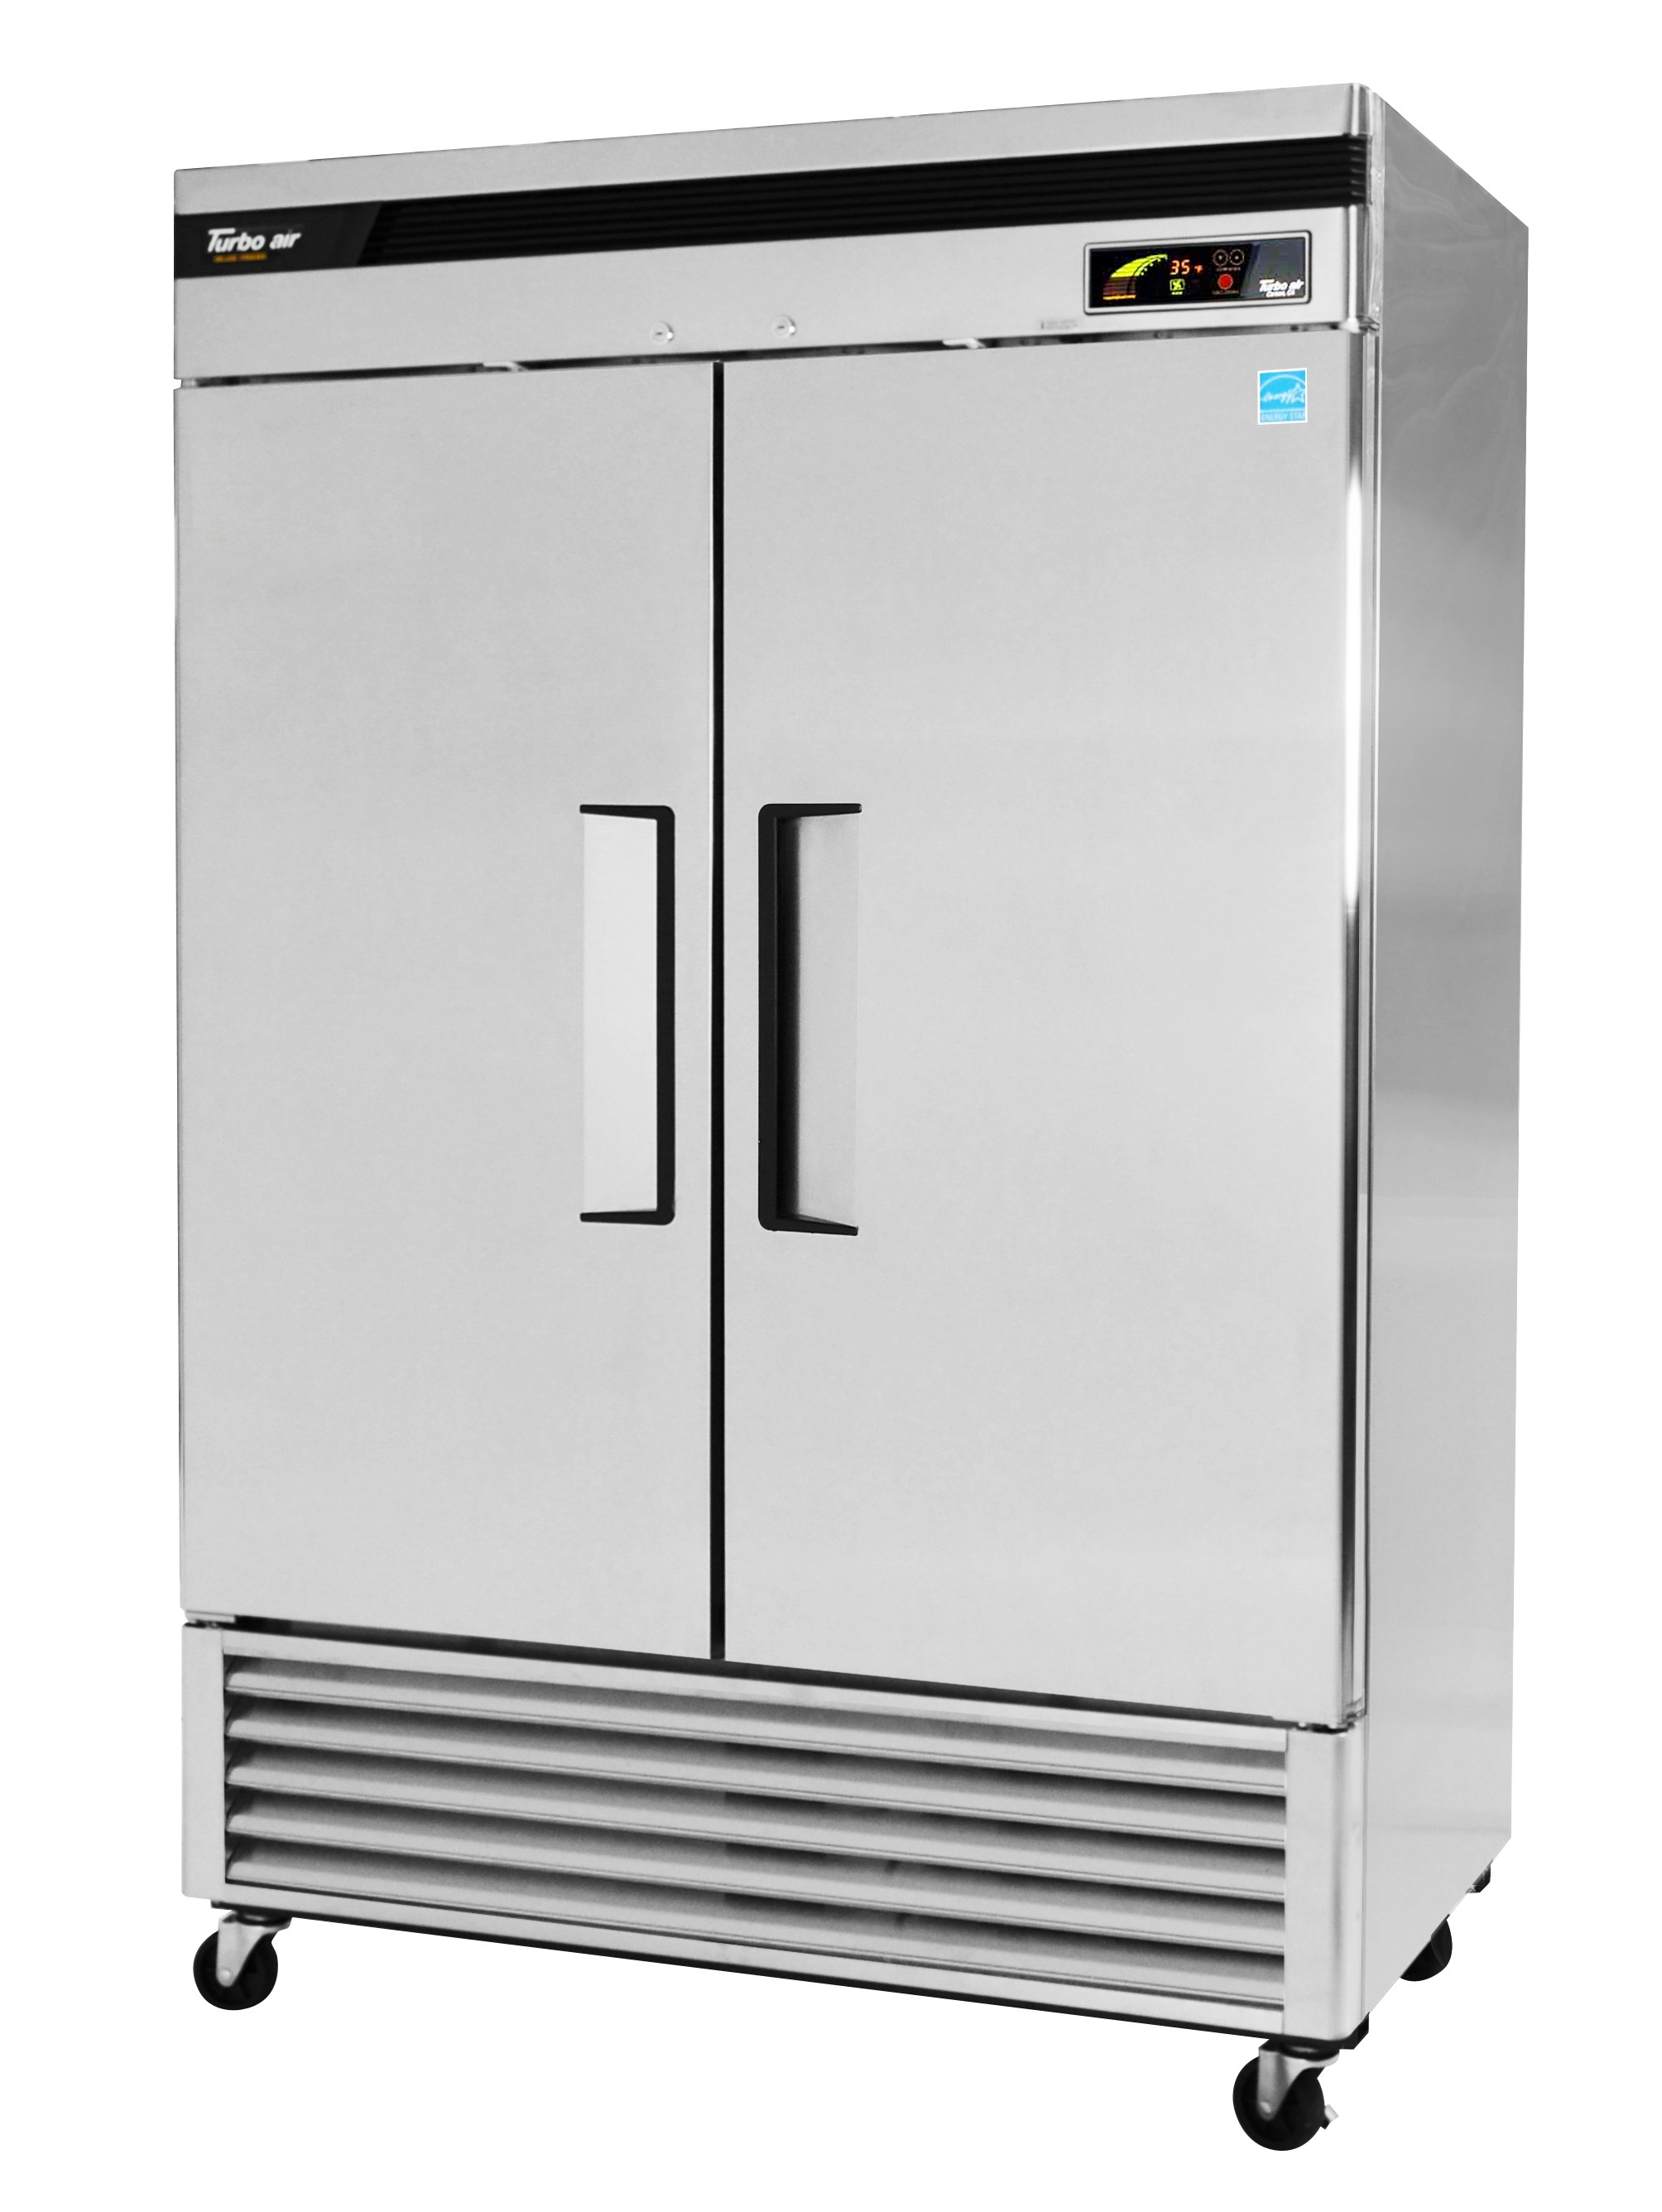 Turbo Air Refrigerator